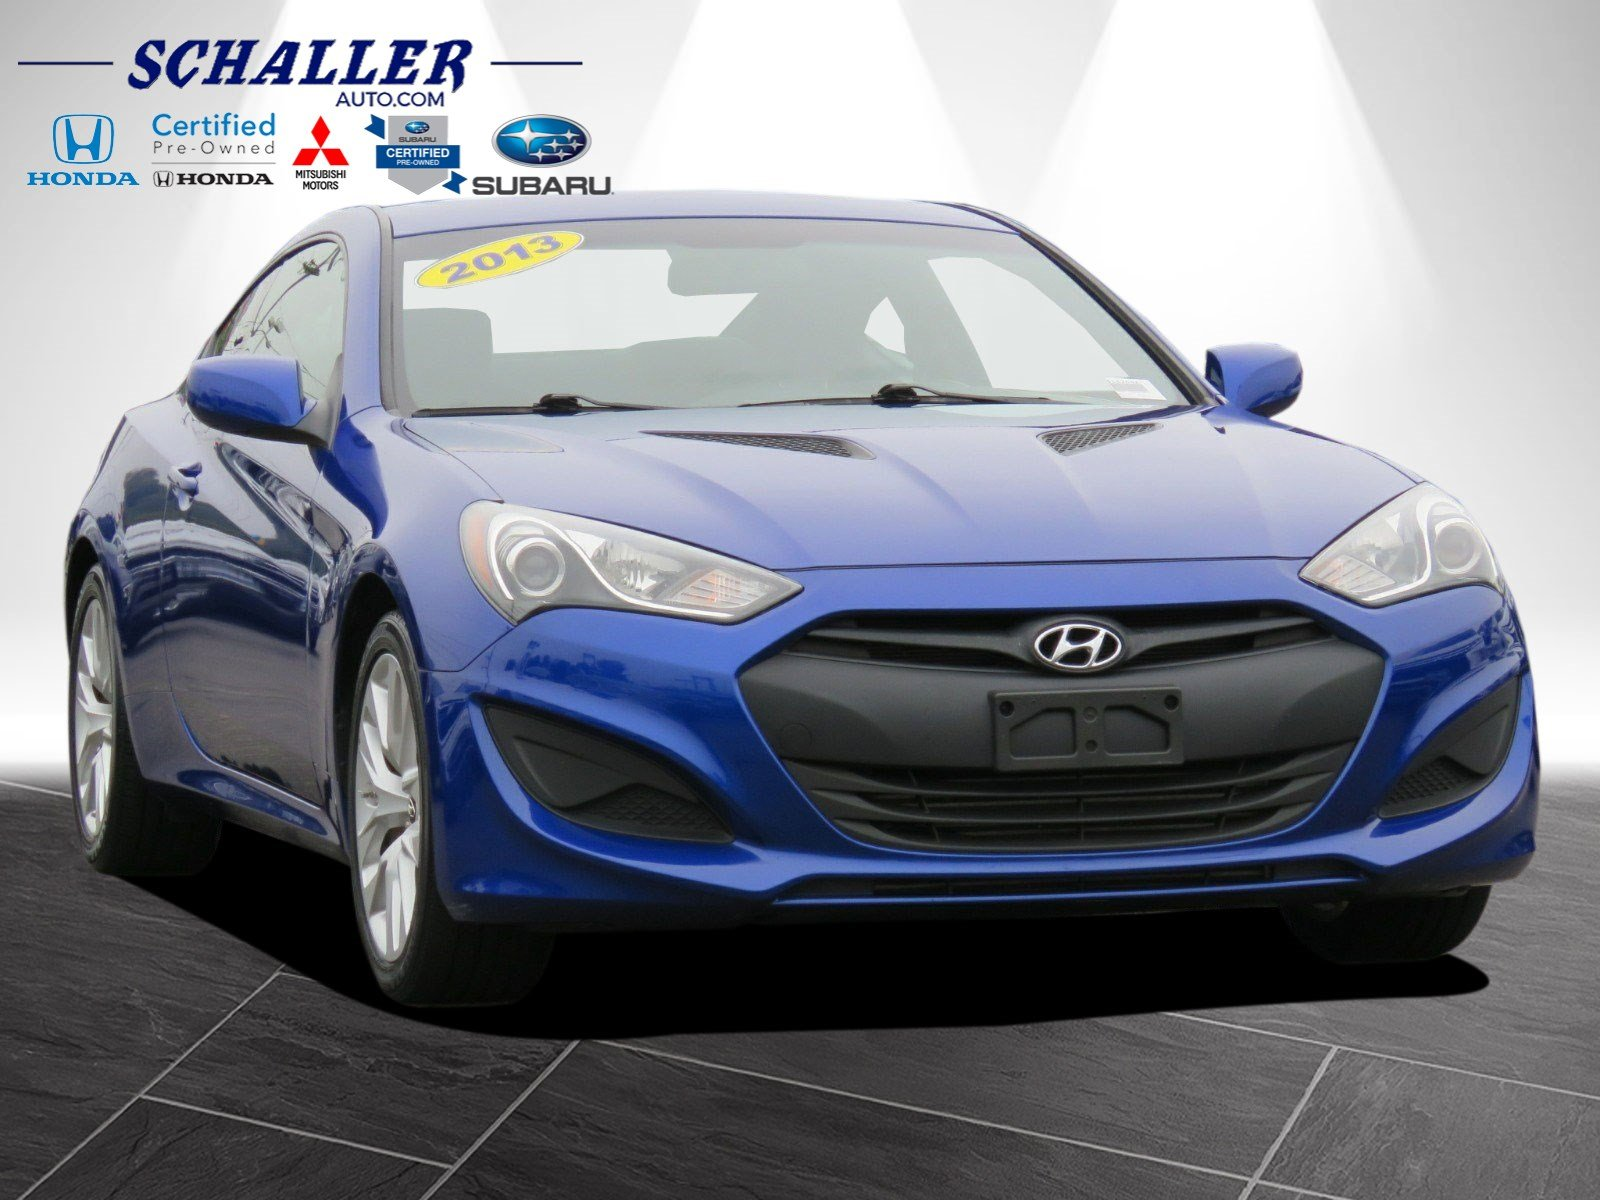 Pre Owned 2013 Hyundai Genesis Coupe 2.0T